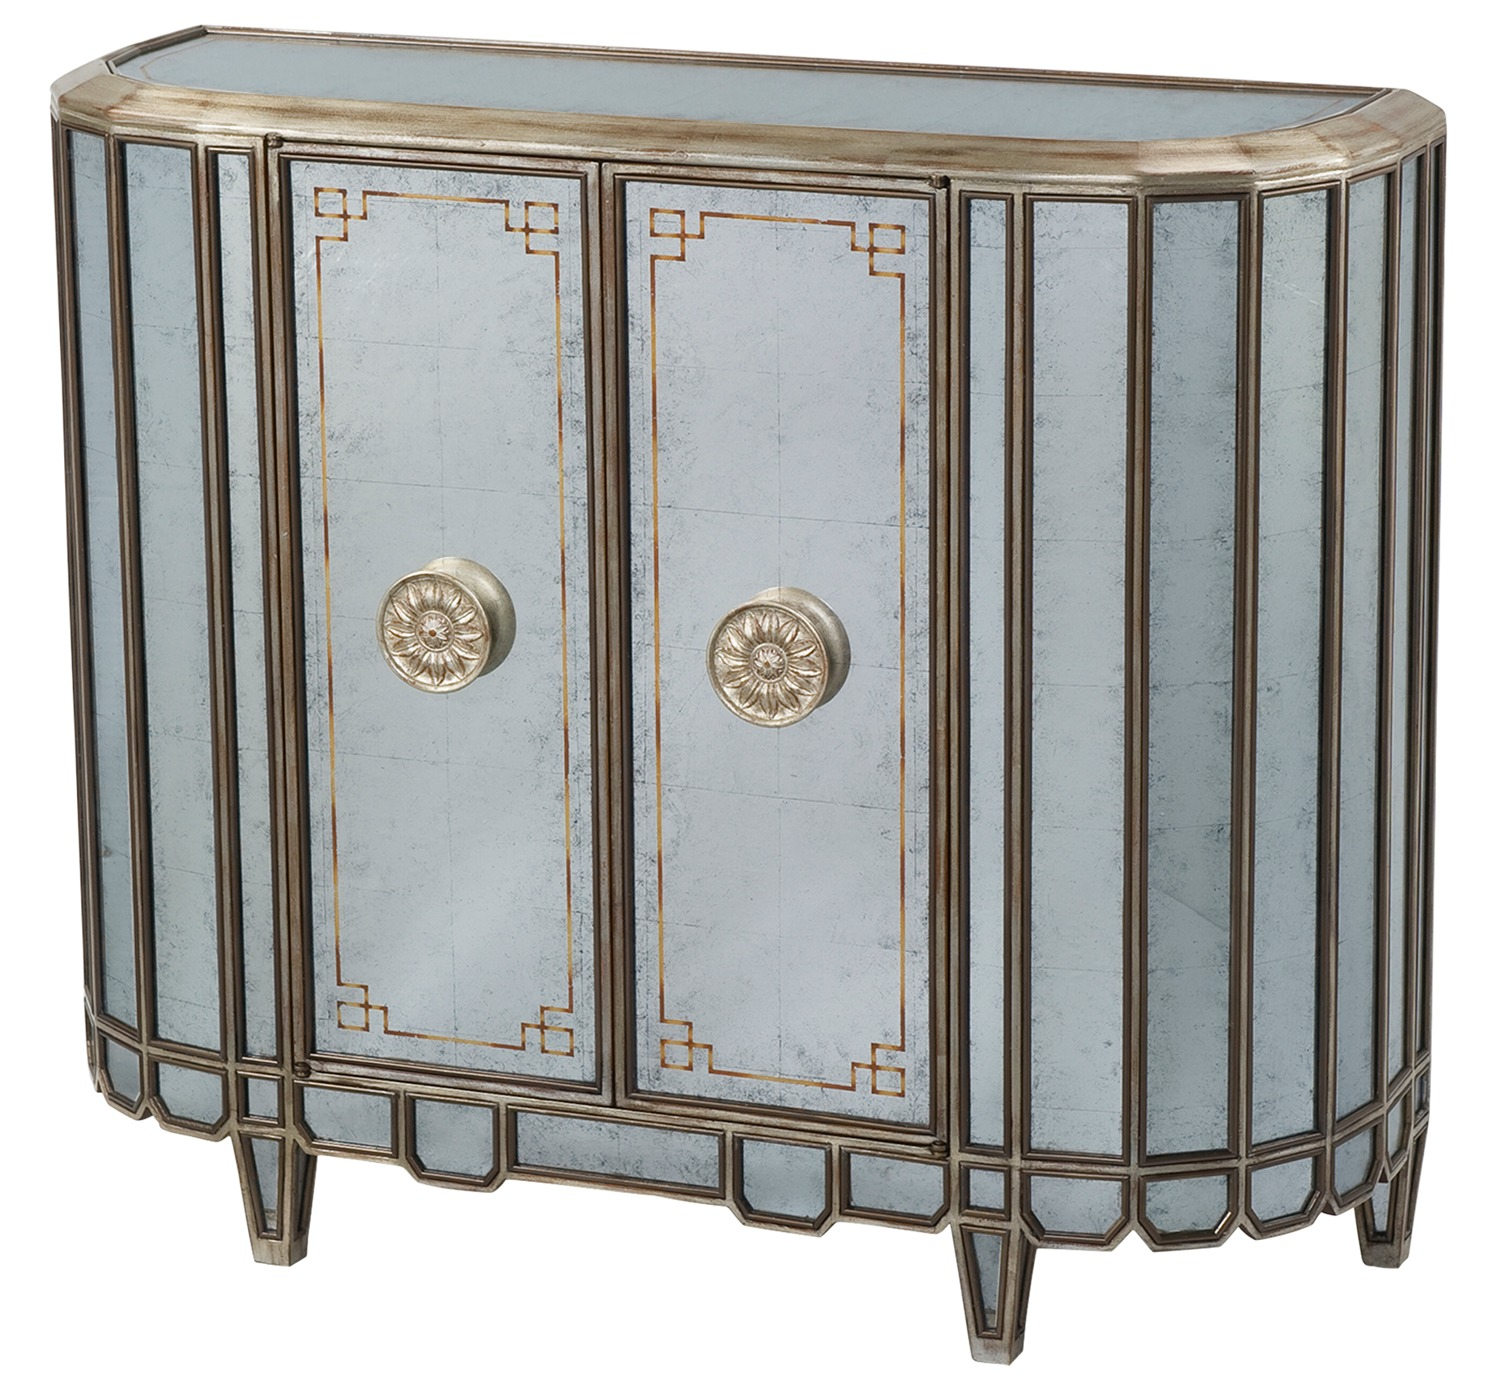 An antique mirrored side cabinet